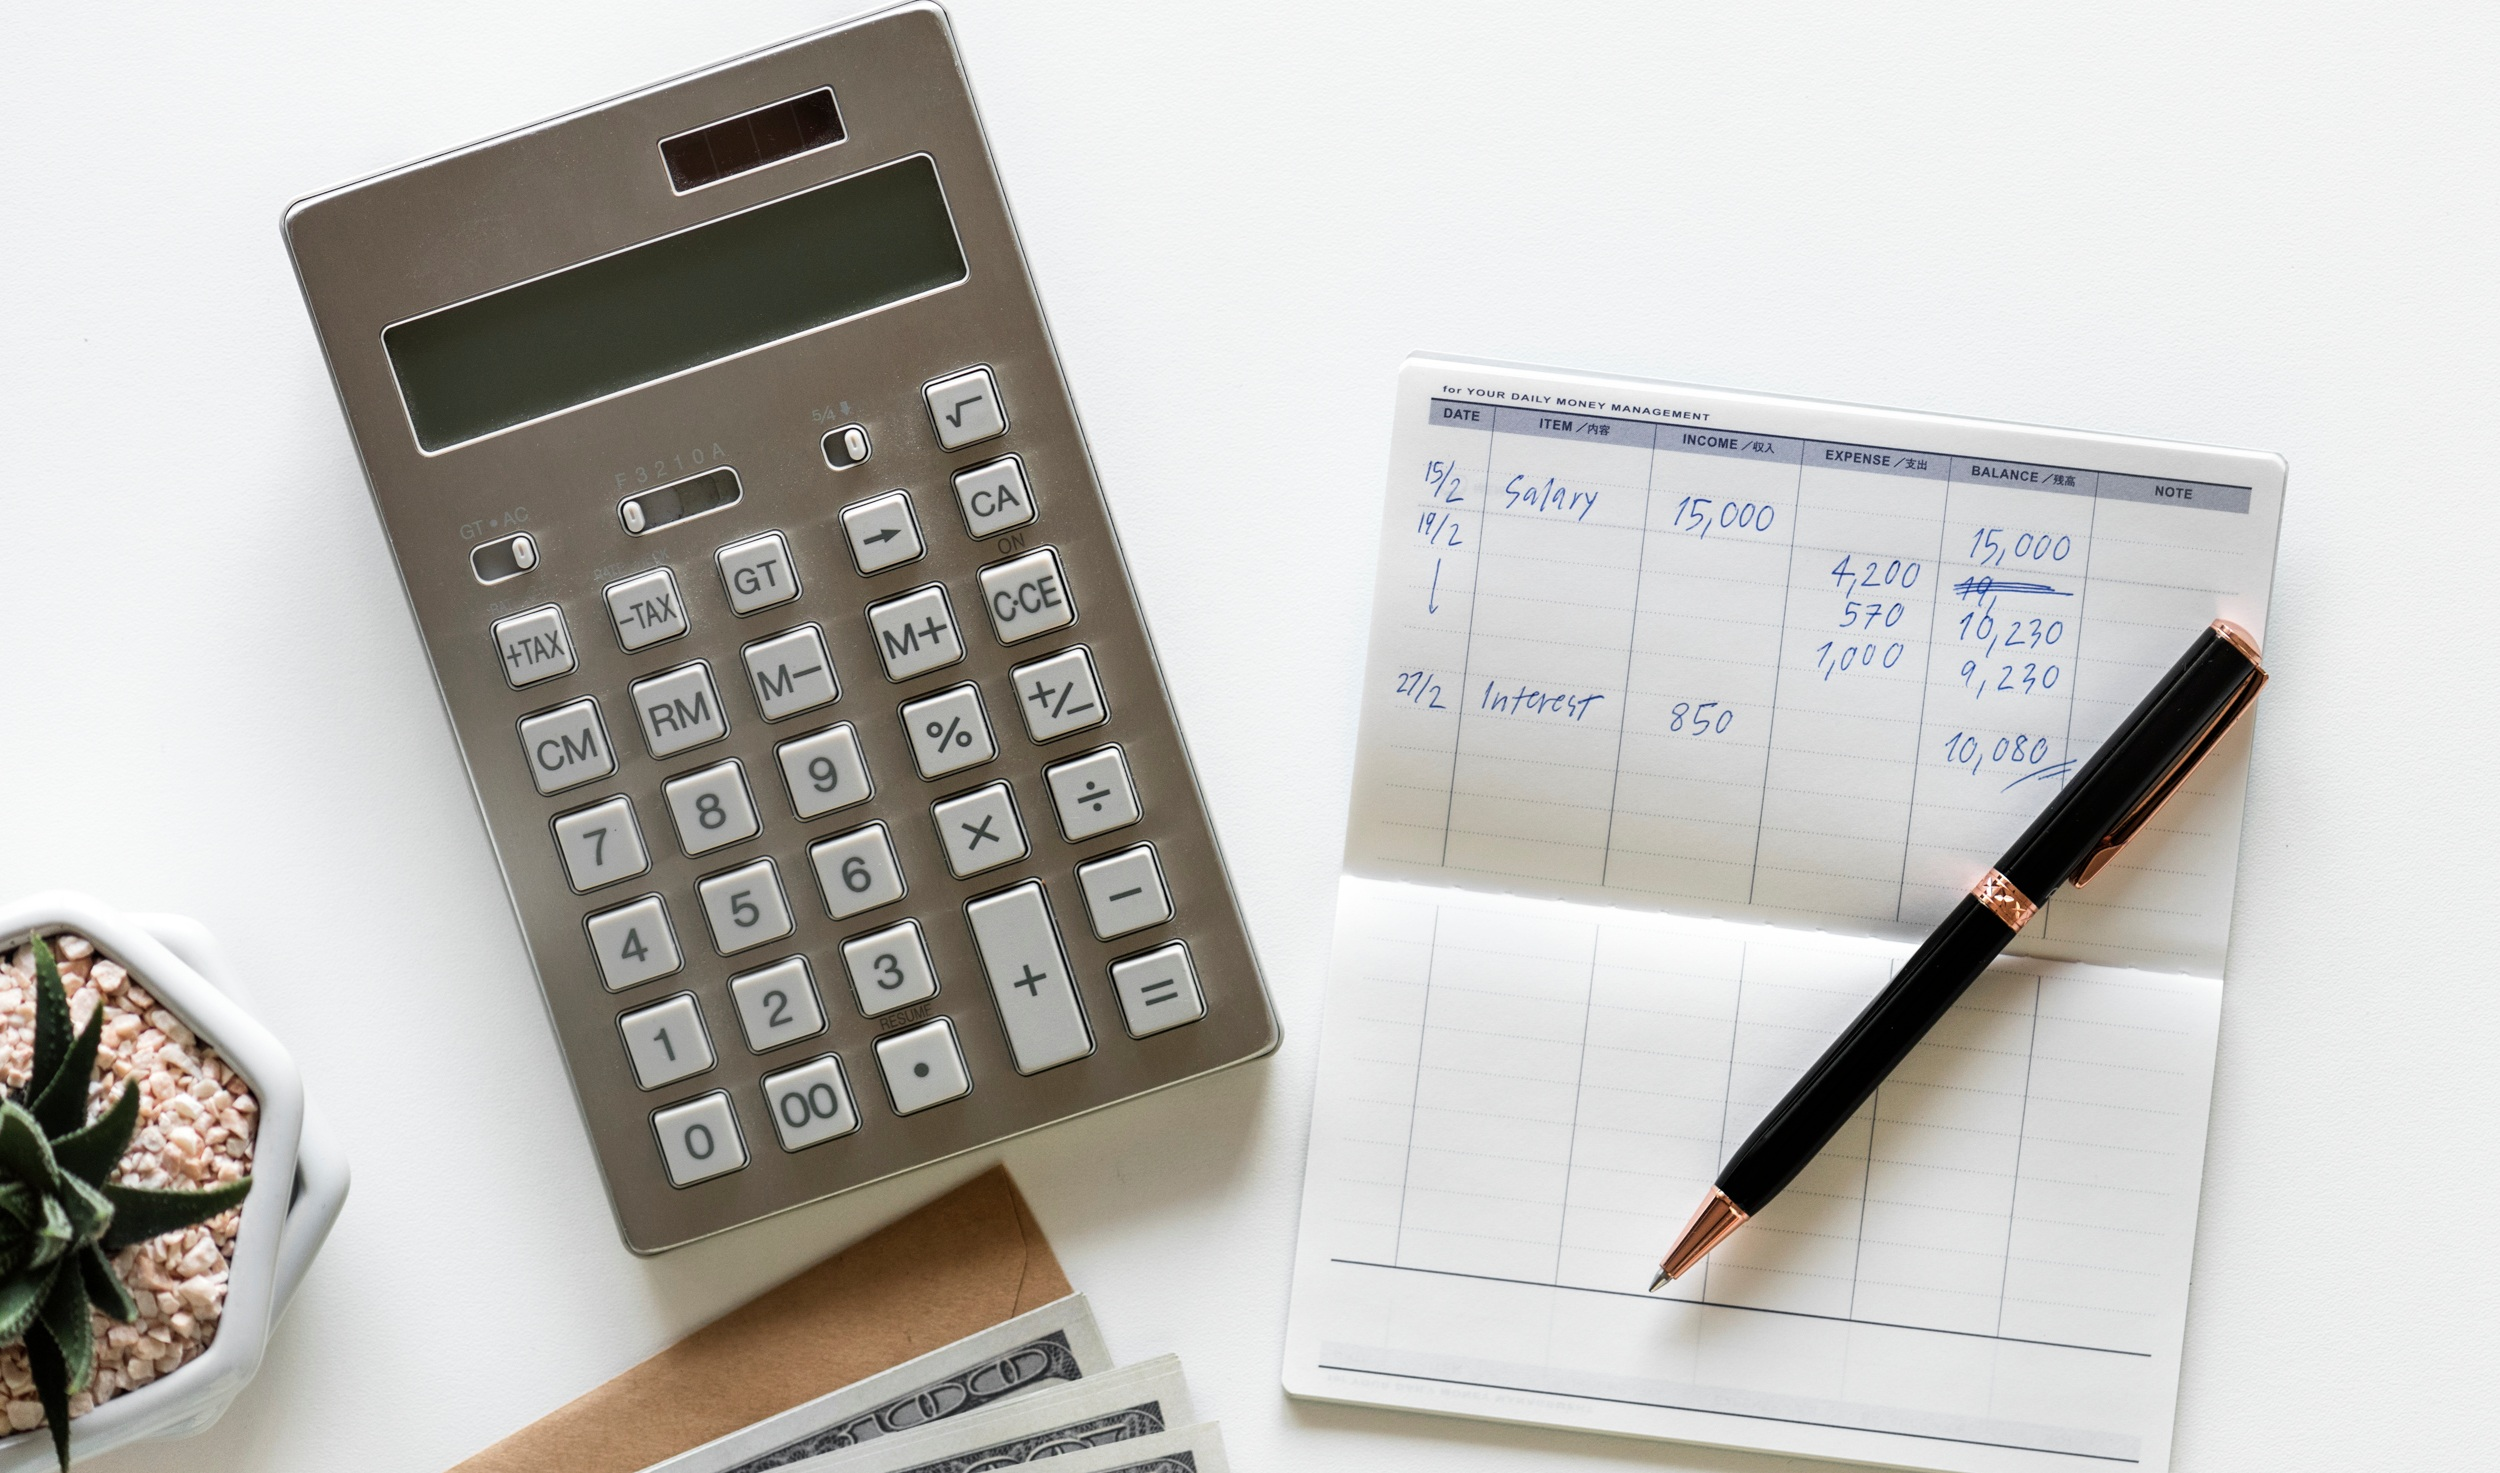 While handheld calculators and registers may be getting dated, they still work like a charm when setting up your budget and tracking expenses.